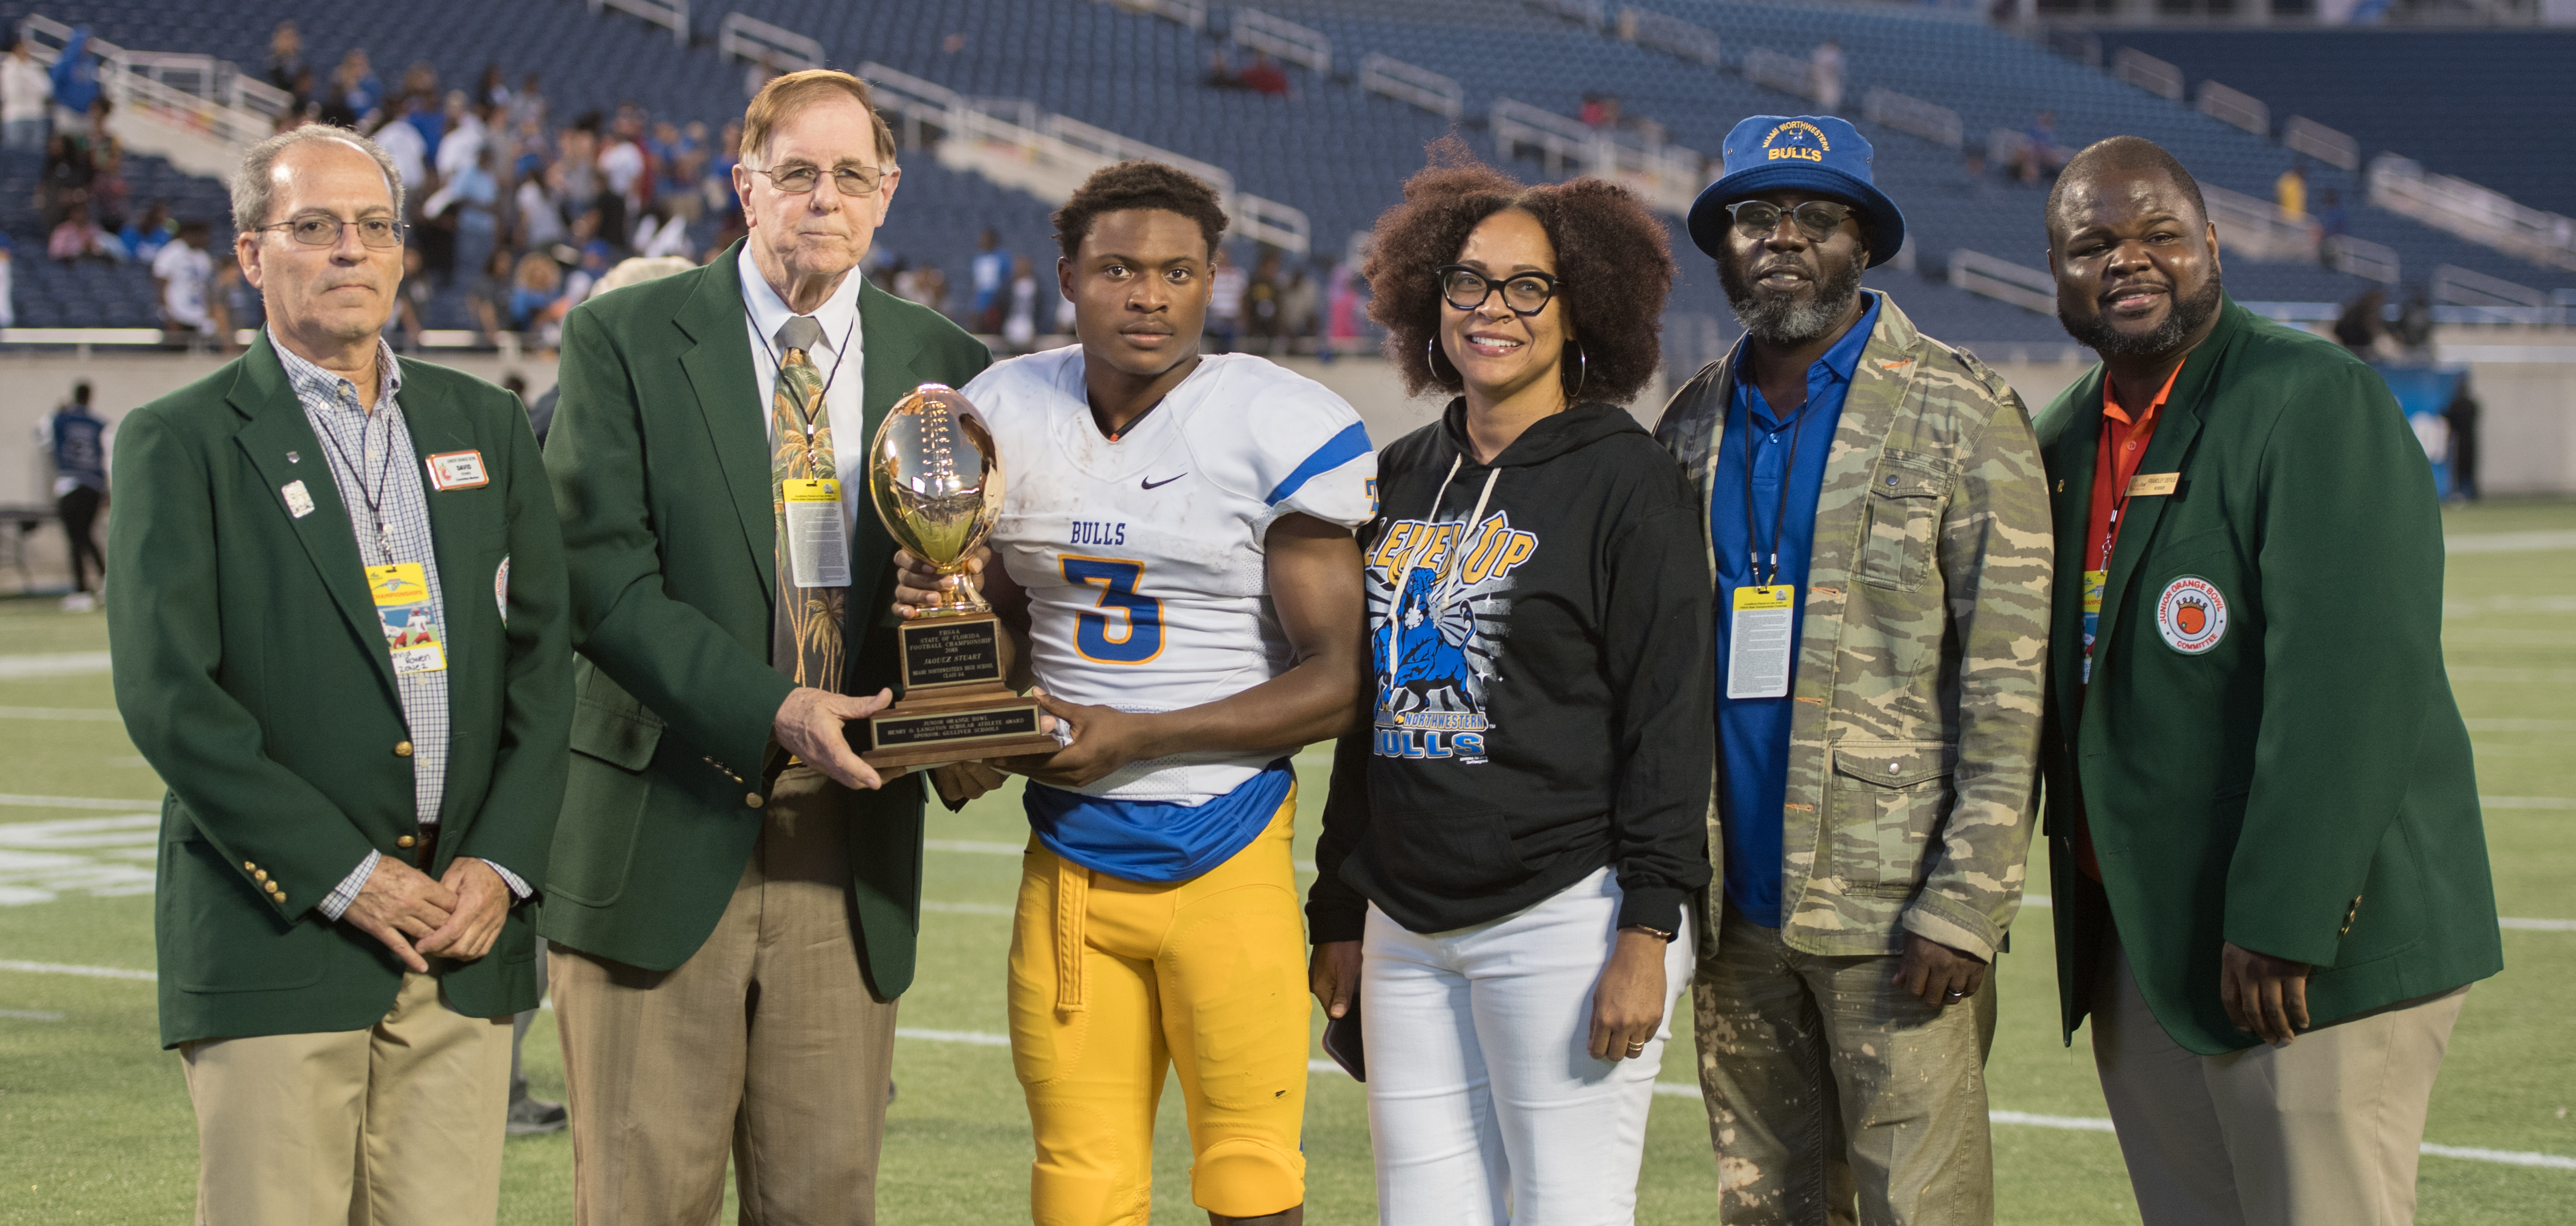 Junior Orange Bowl Honors Scholar Athletes at the FHSAA Football State Championships